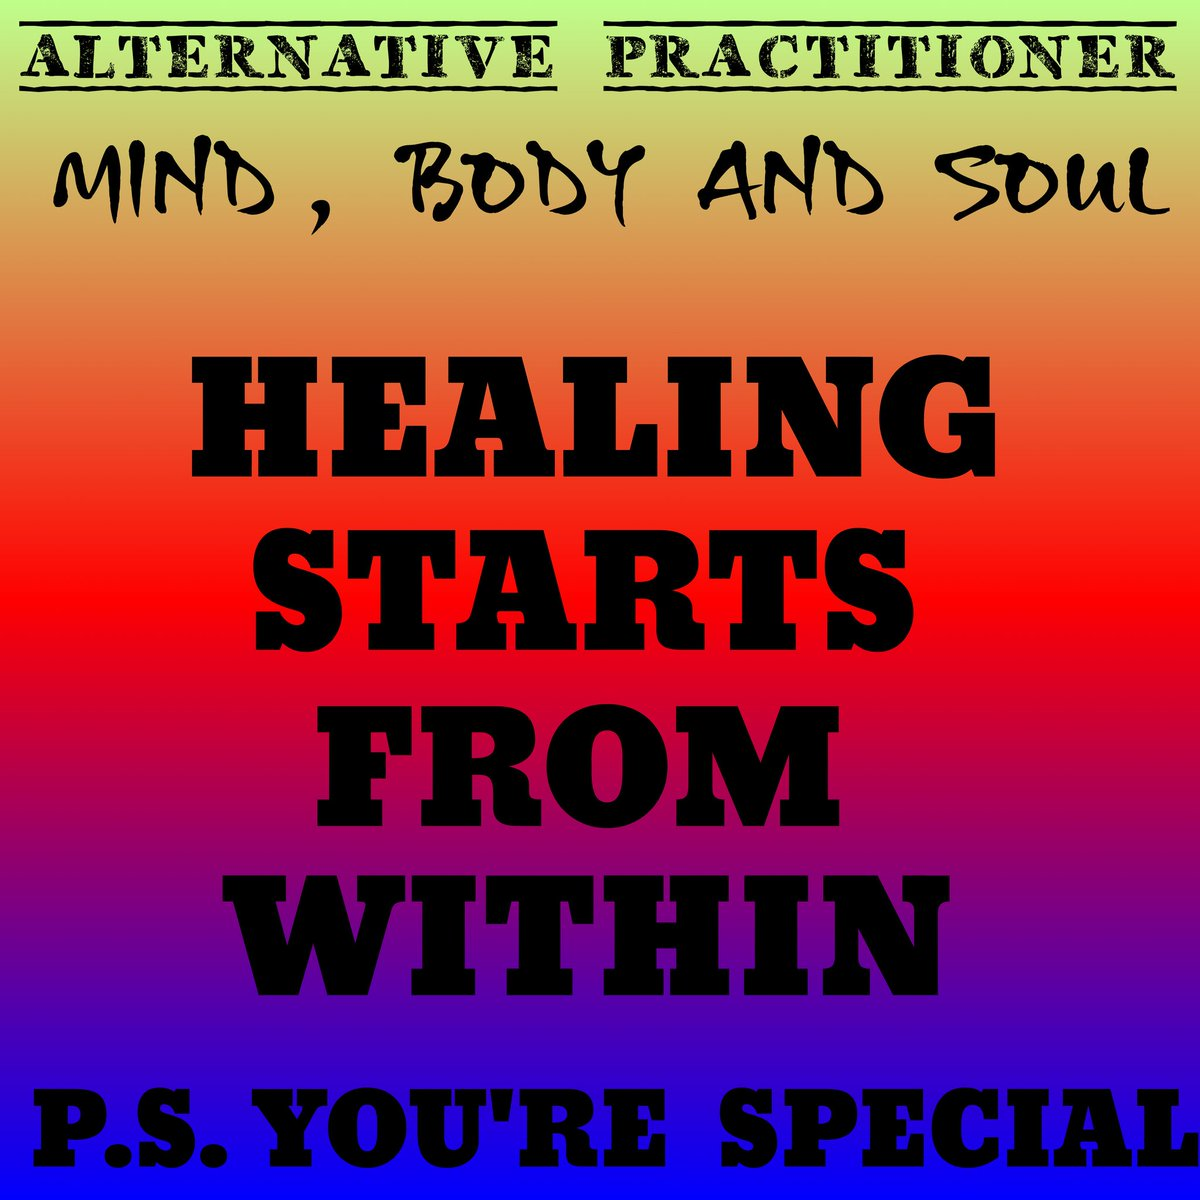 The world you're seeking for resides in you. #mind #body #soul #Health #HealingTheSoul #trainerpuneet #privatepersonaltrainer #psyourespecial #Training #alternativepractitioner #lovepic.twitter.com/5GxdYB31Gu